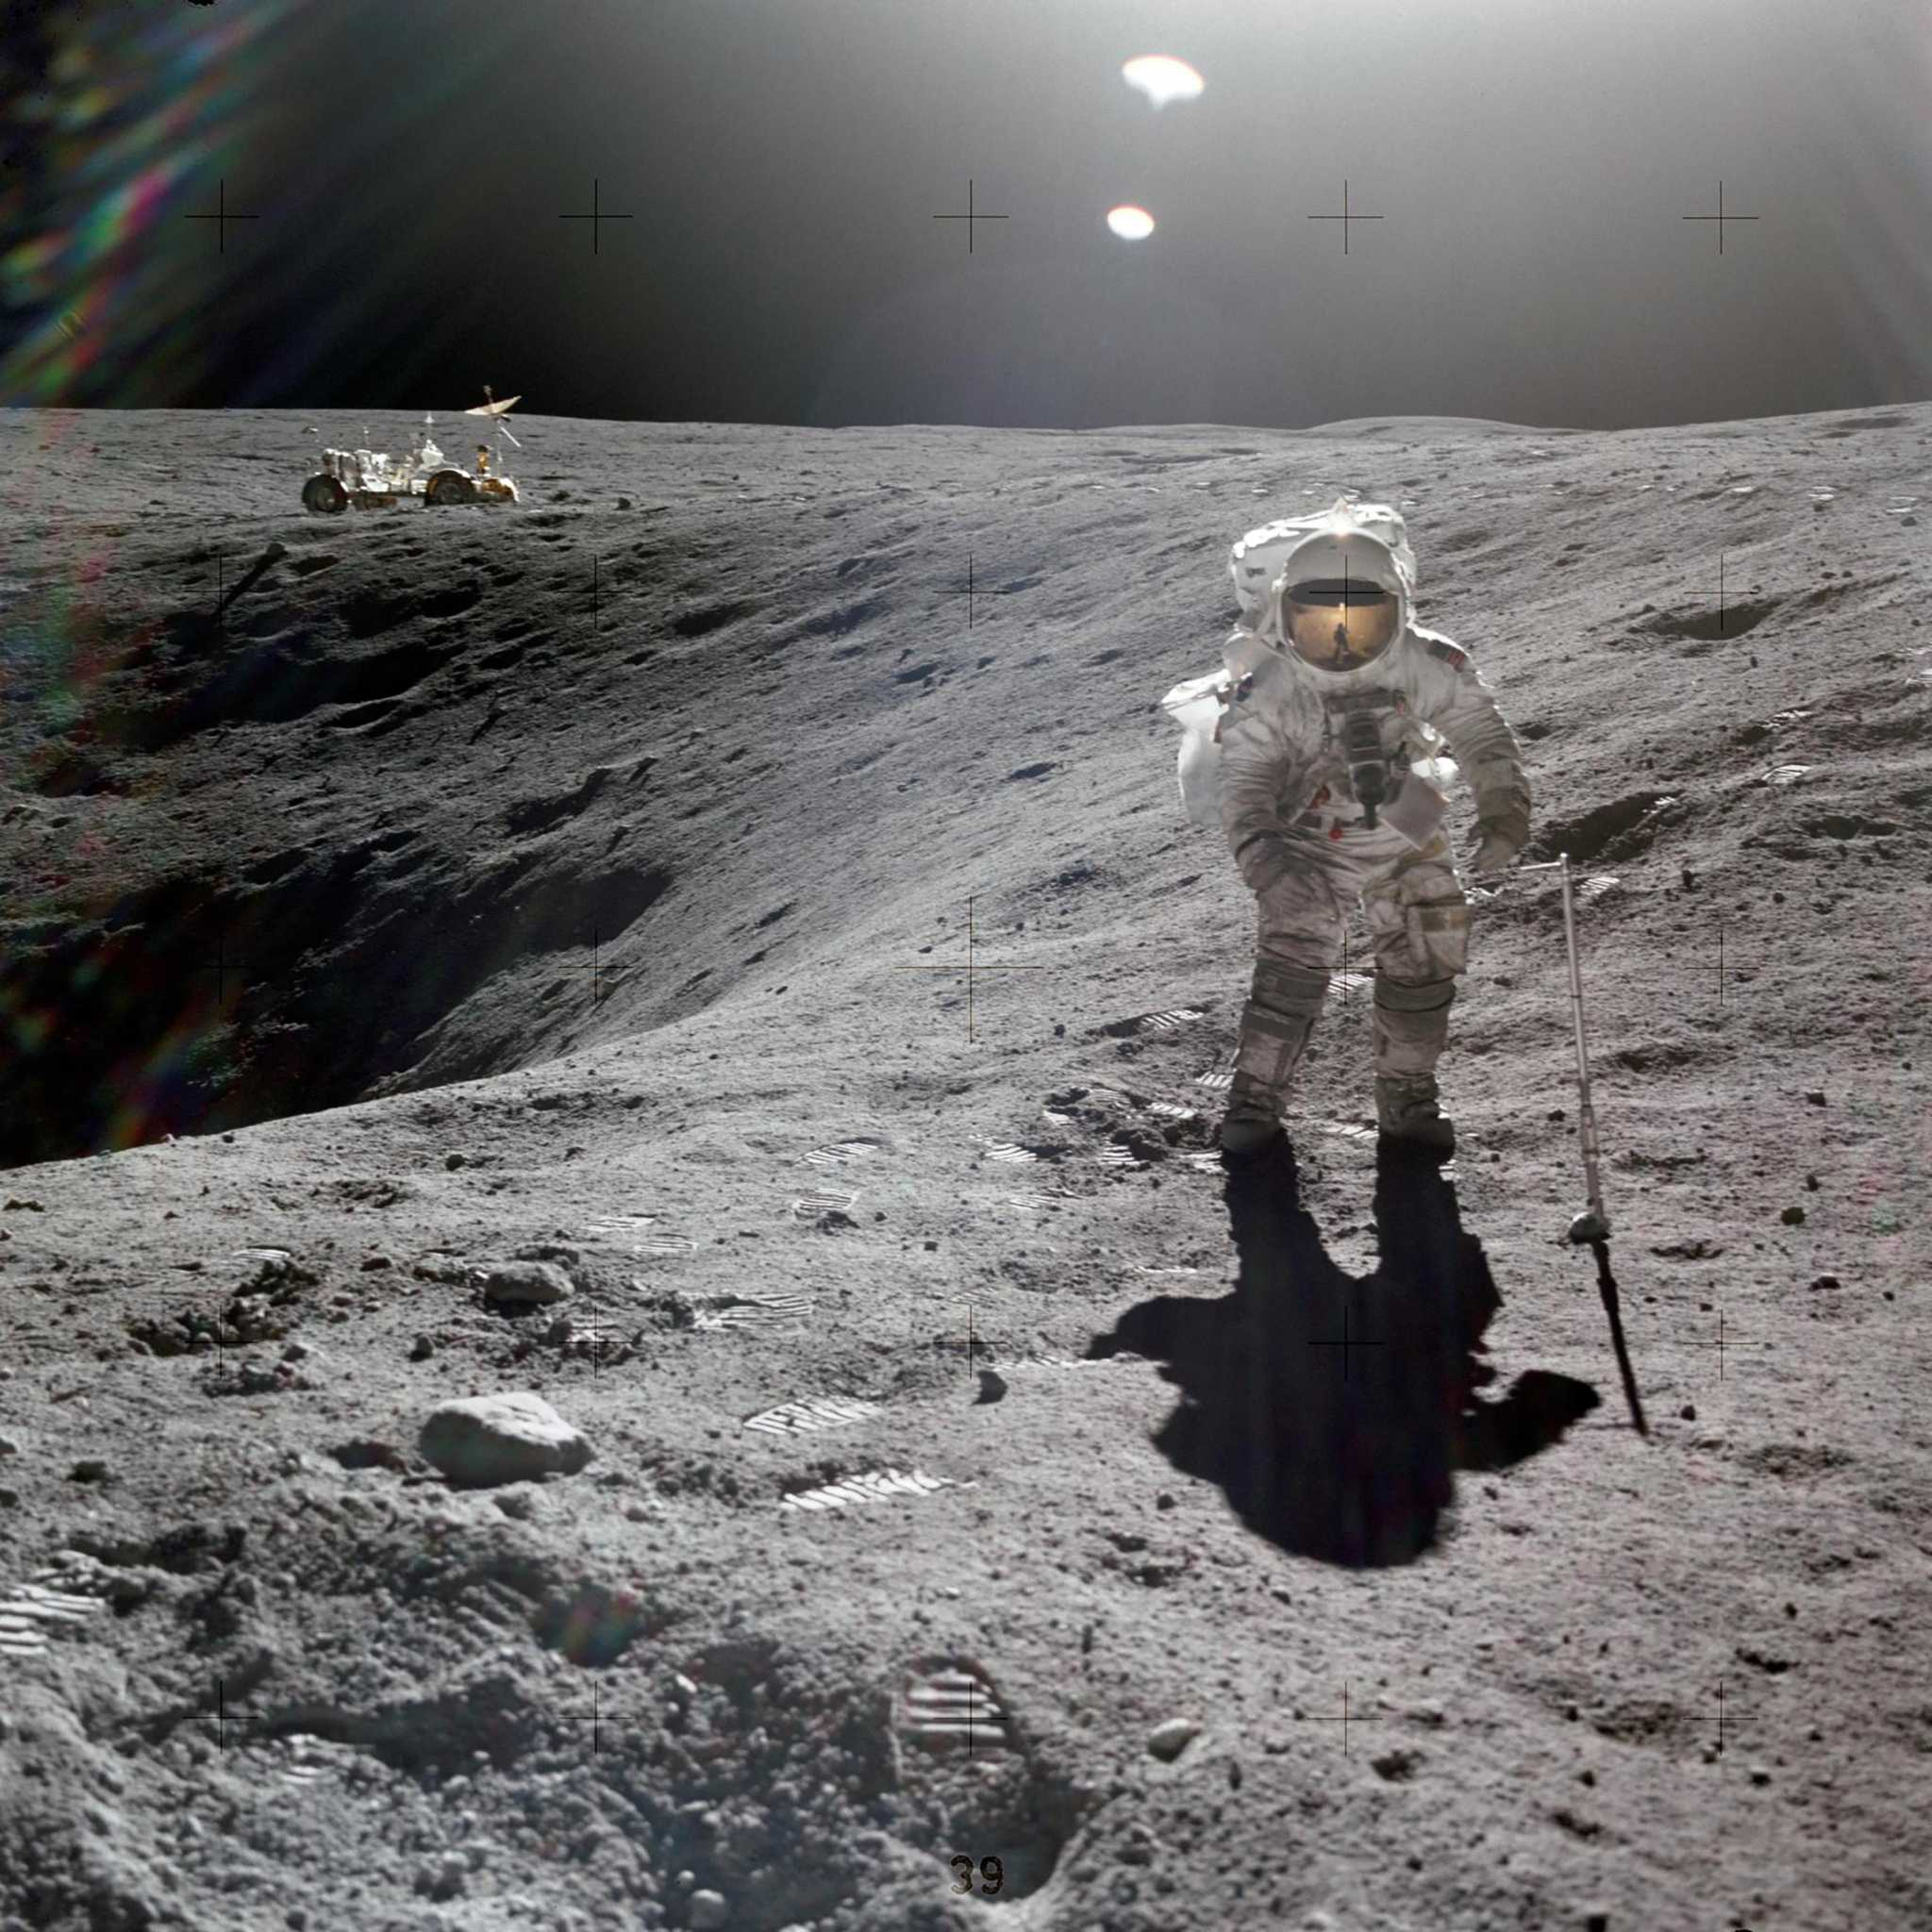 Youngest man on the moon: Astronaut Charles Duke left family photo behind